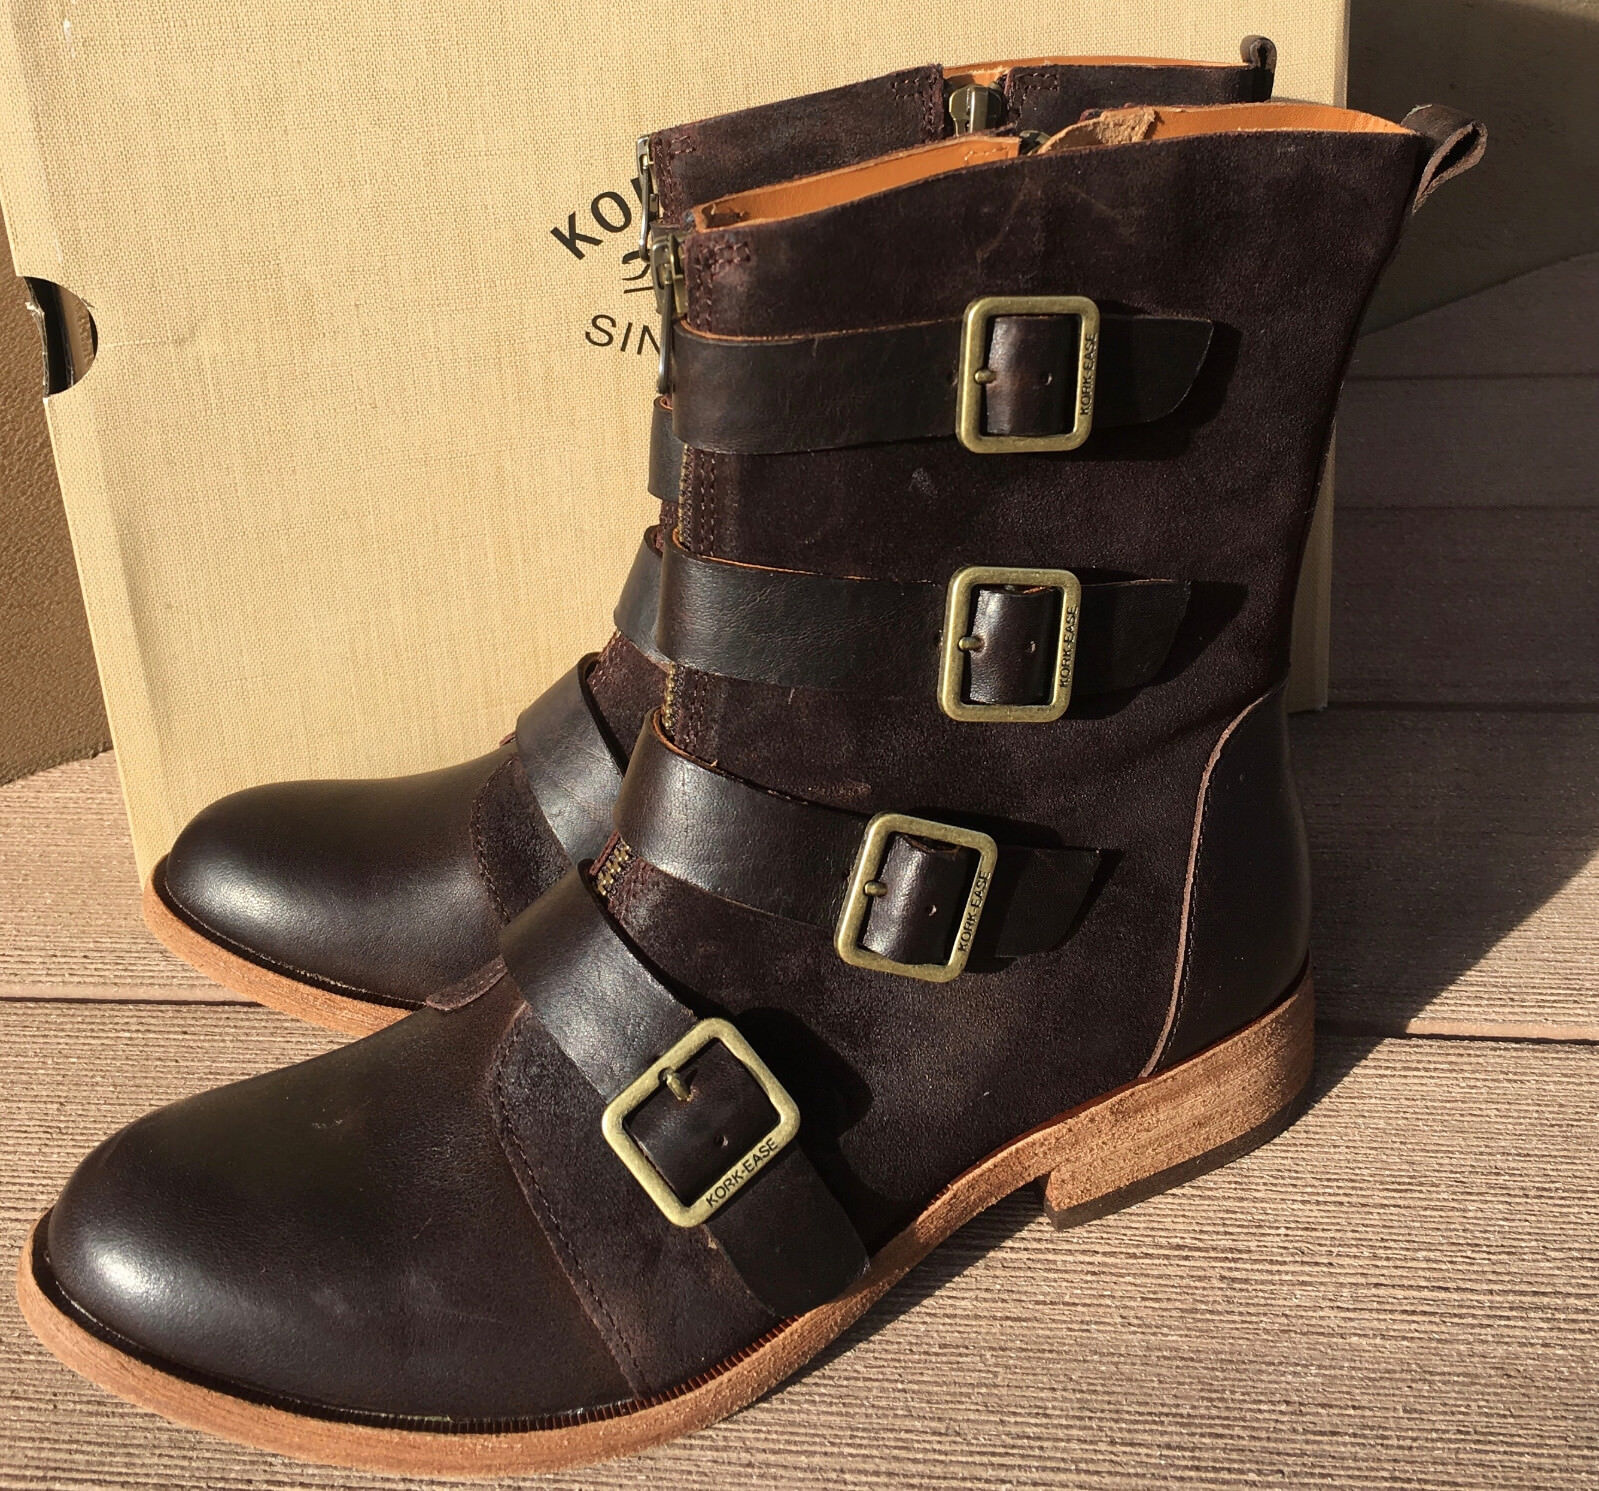 NEW NIB Kork-Ease Monrovia Mid Calf Biker Boot Chocolate Espresso 6.5 ret'l